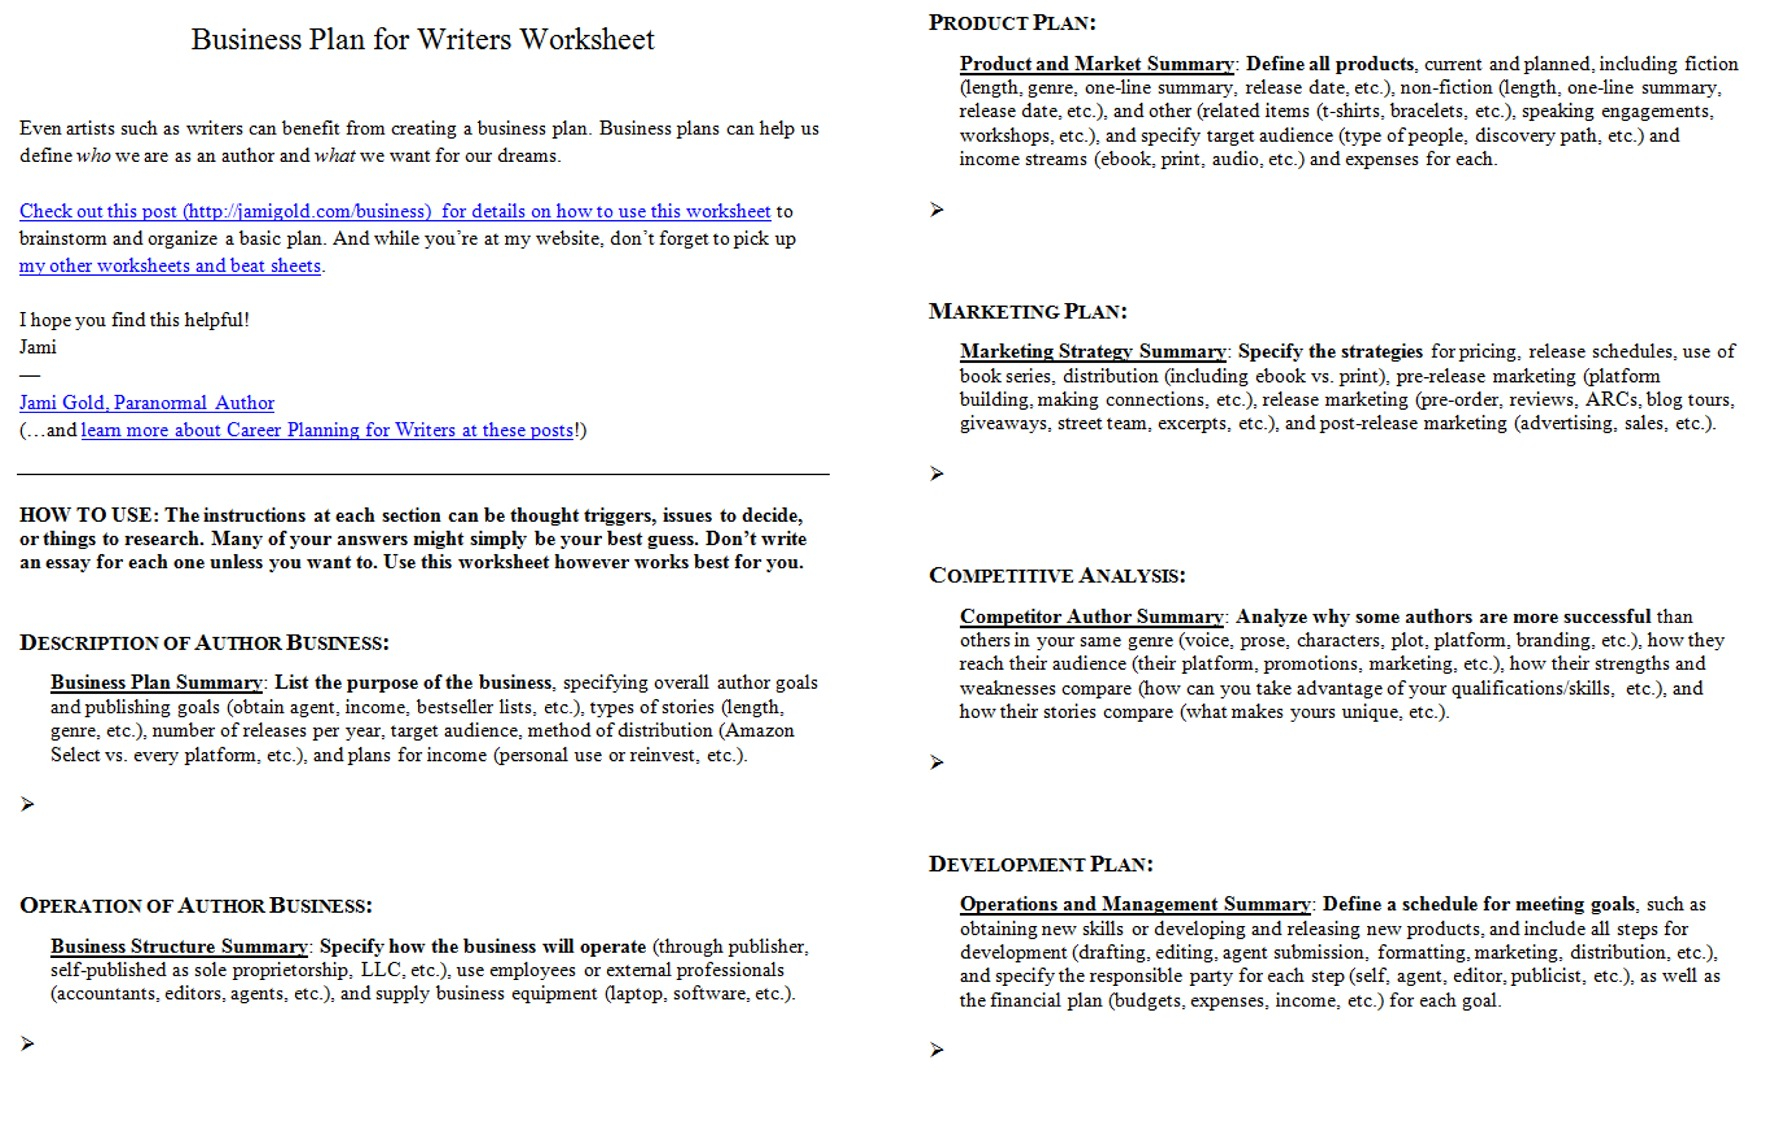 Aldiablosus  Personable Worksheets For Writers  Jami Gold Paranormal Author With Hot Screen Shot Of Both Pages Of The Business Plan For Writers Worksheet With Amazing Article Summary Worksheet Also Free Nd Grade Reading Comprehension Worksheets In Addition Charge And Electricity Worksheet Answers And Simple Harmonic Motion Worksheet As Well As Algebra  Worksheets Pdf Additionally How To Group Worksheets In Excel From Jamigoldcom With Aldiablosus  Hot Worksheets For Writers  Jami Gold Paranormal Author With Amazing Screen Shot Of Both Pages Of The Business Plan For Writers Worksheet And Personable Article Summary Worksheet Also Free Nd Grade Reading Comprehension Worksheets In Addition Charge And Electricity Worksheet Answers From Jamigoldcom